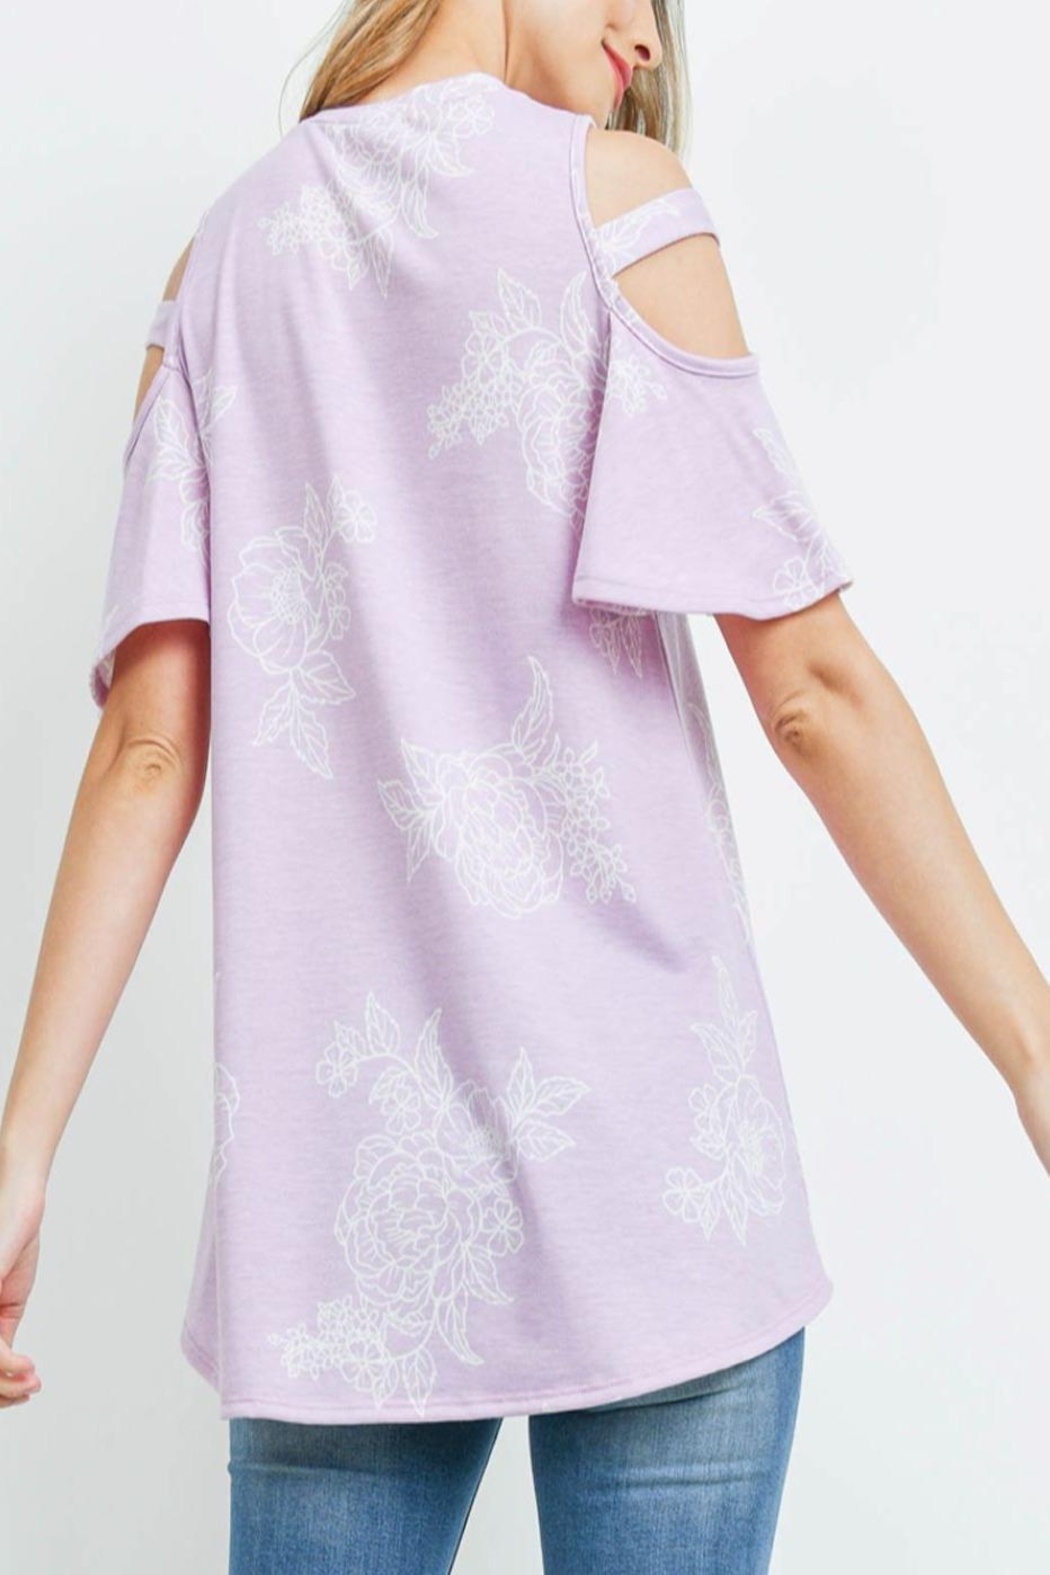 Riah Fashion Floral-Print-Off-Shoulder-Round-Neck-Top - Front Full Image